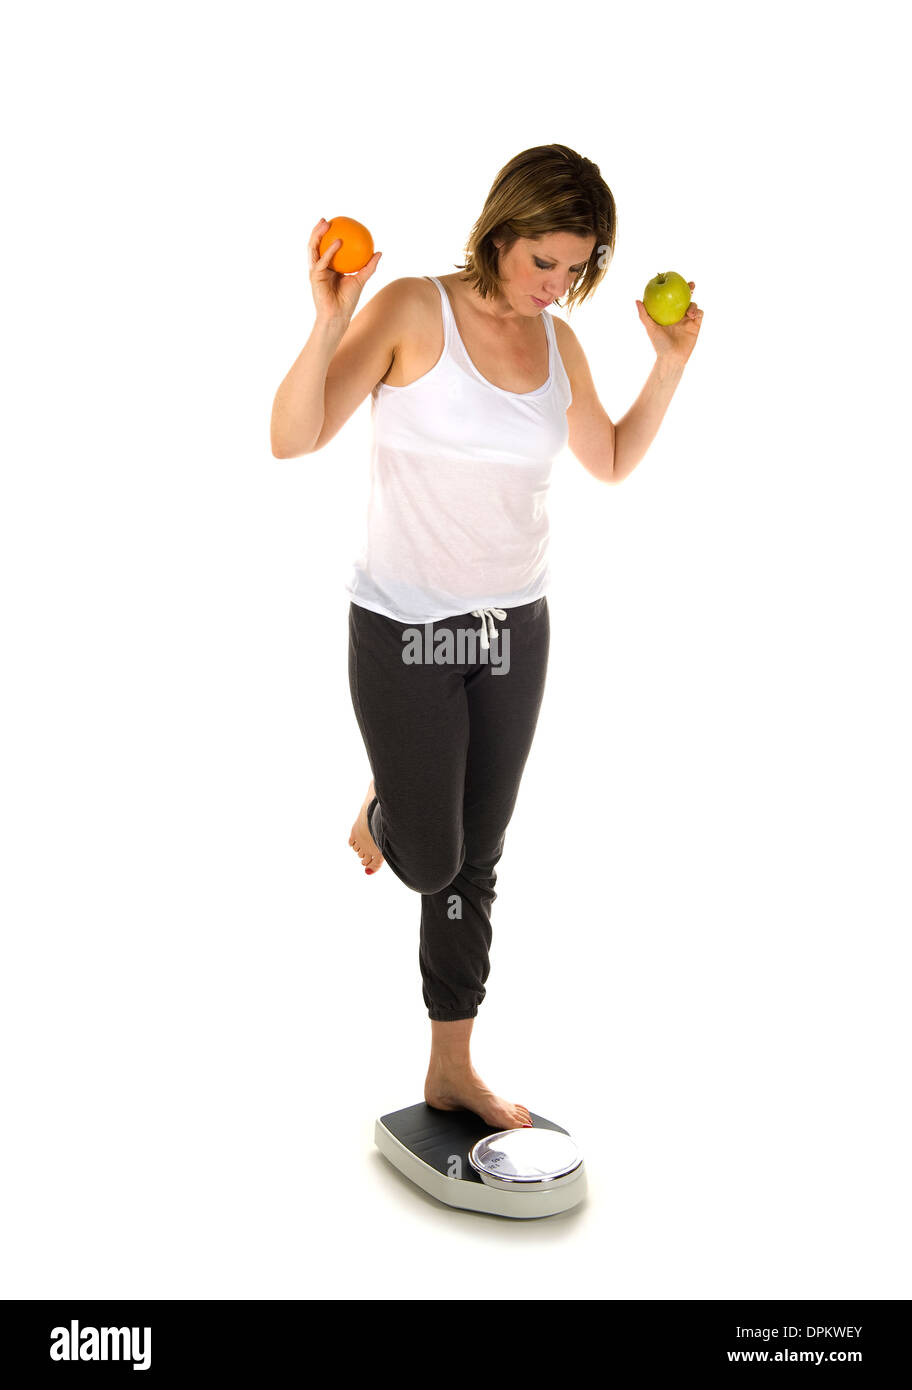 A woman standing on a weight scale with fruit - Stock Image